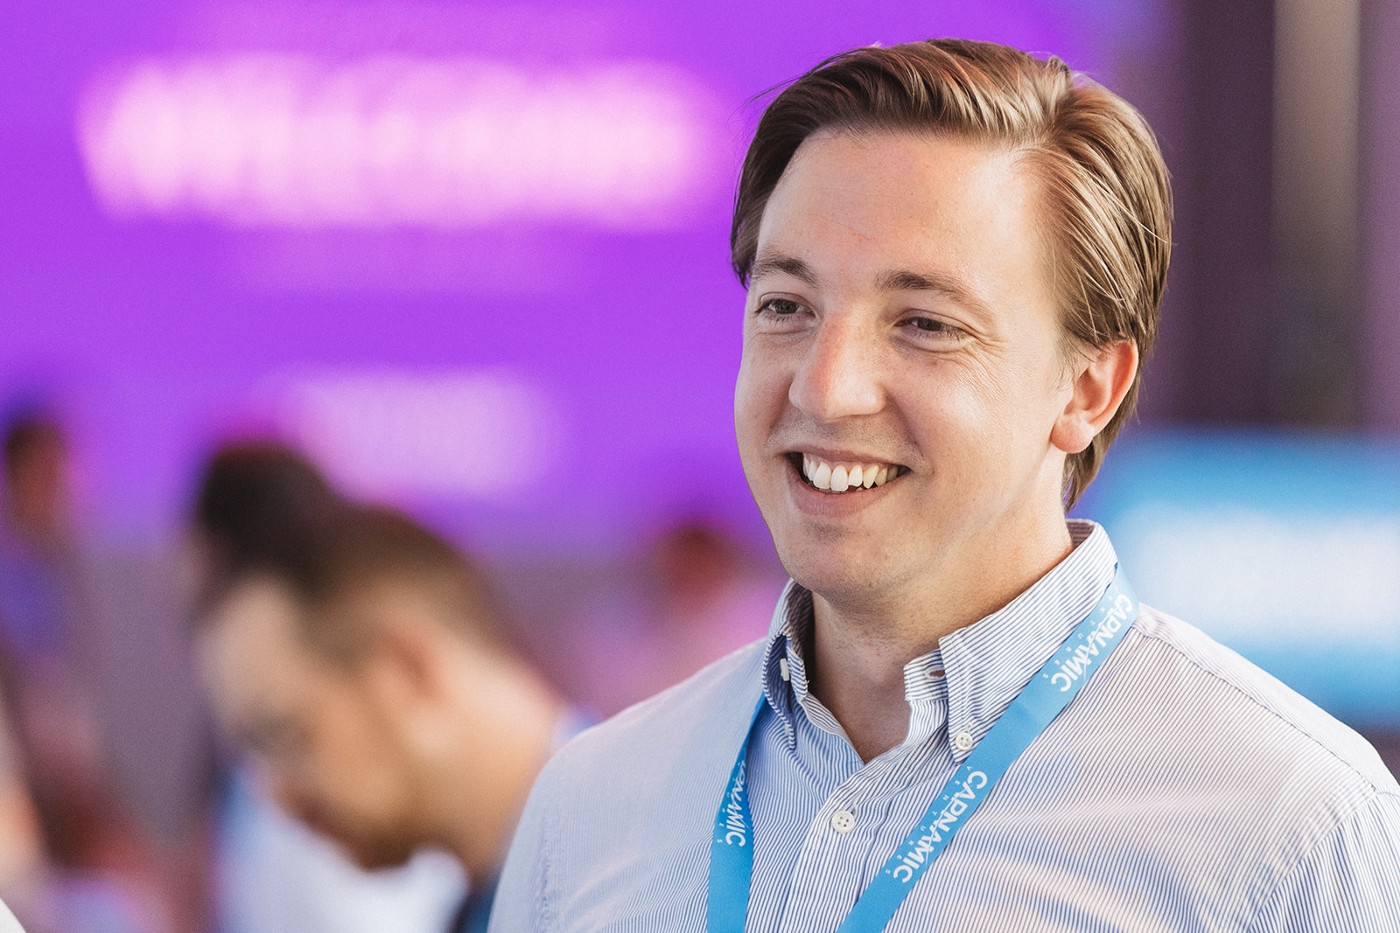 Team expansion at Capnamic Ventures: Niklas Raberg as new Investment Manager